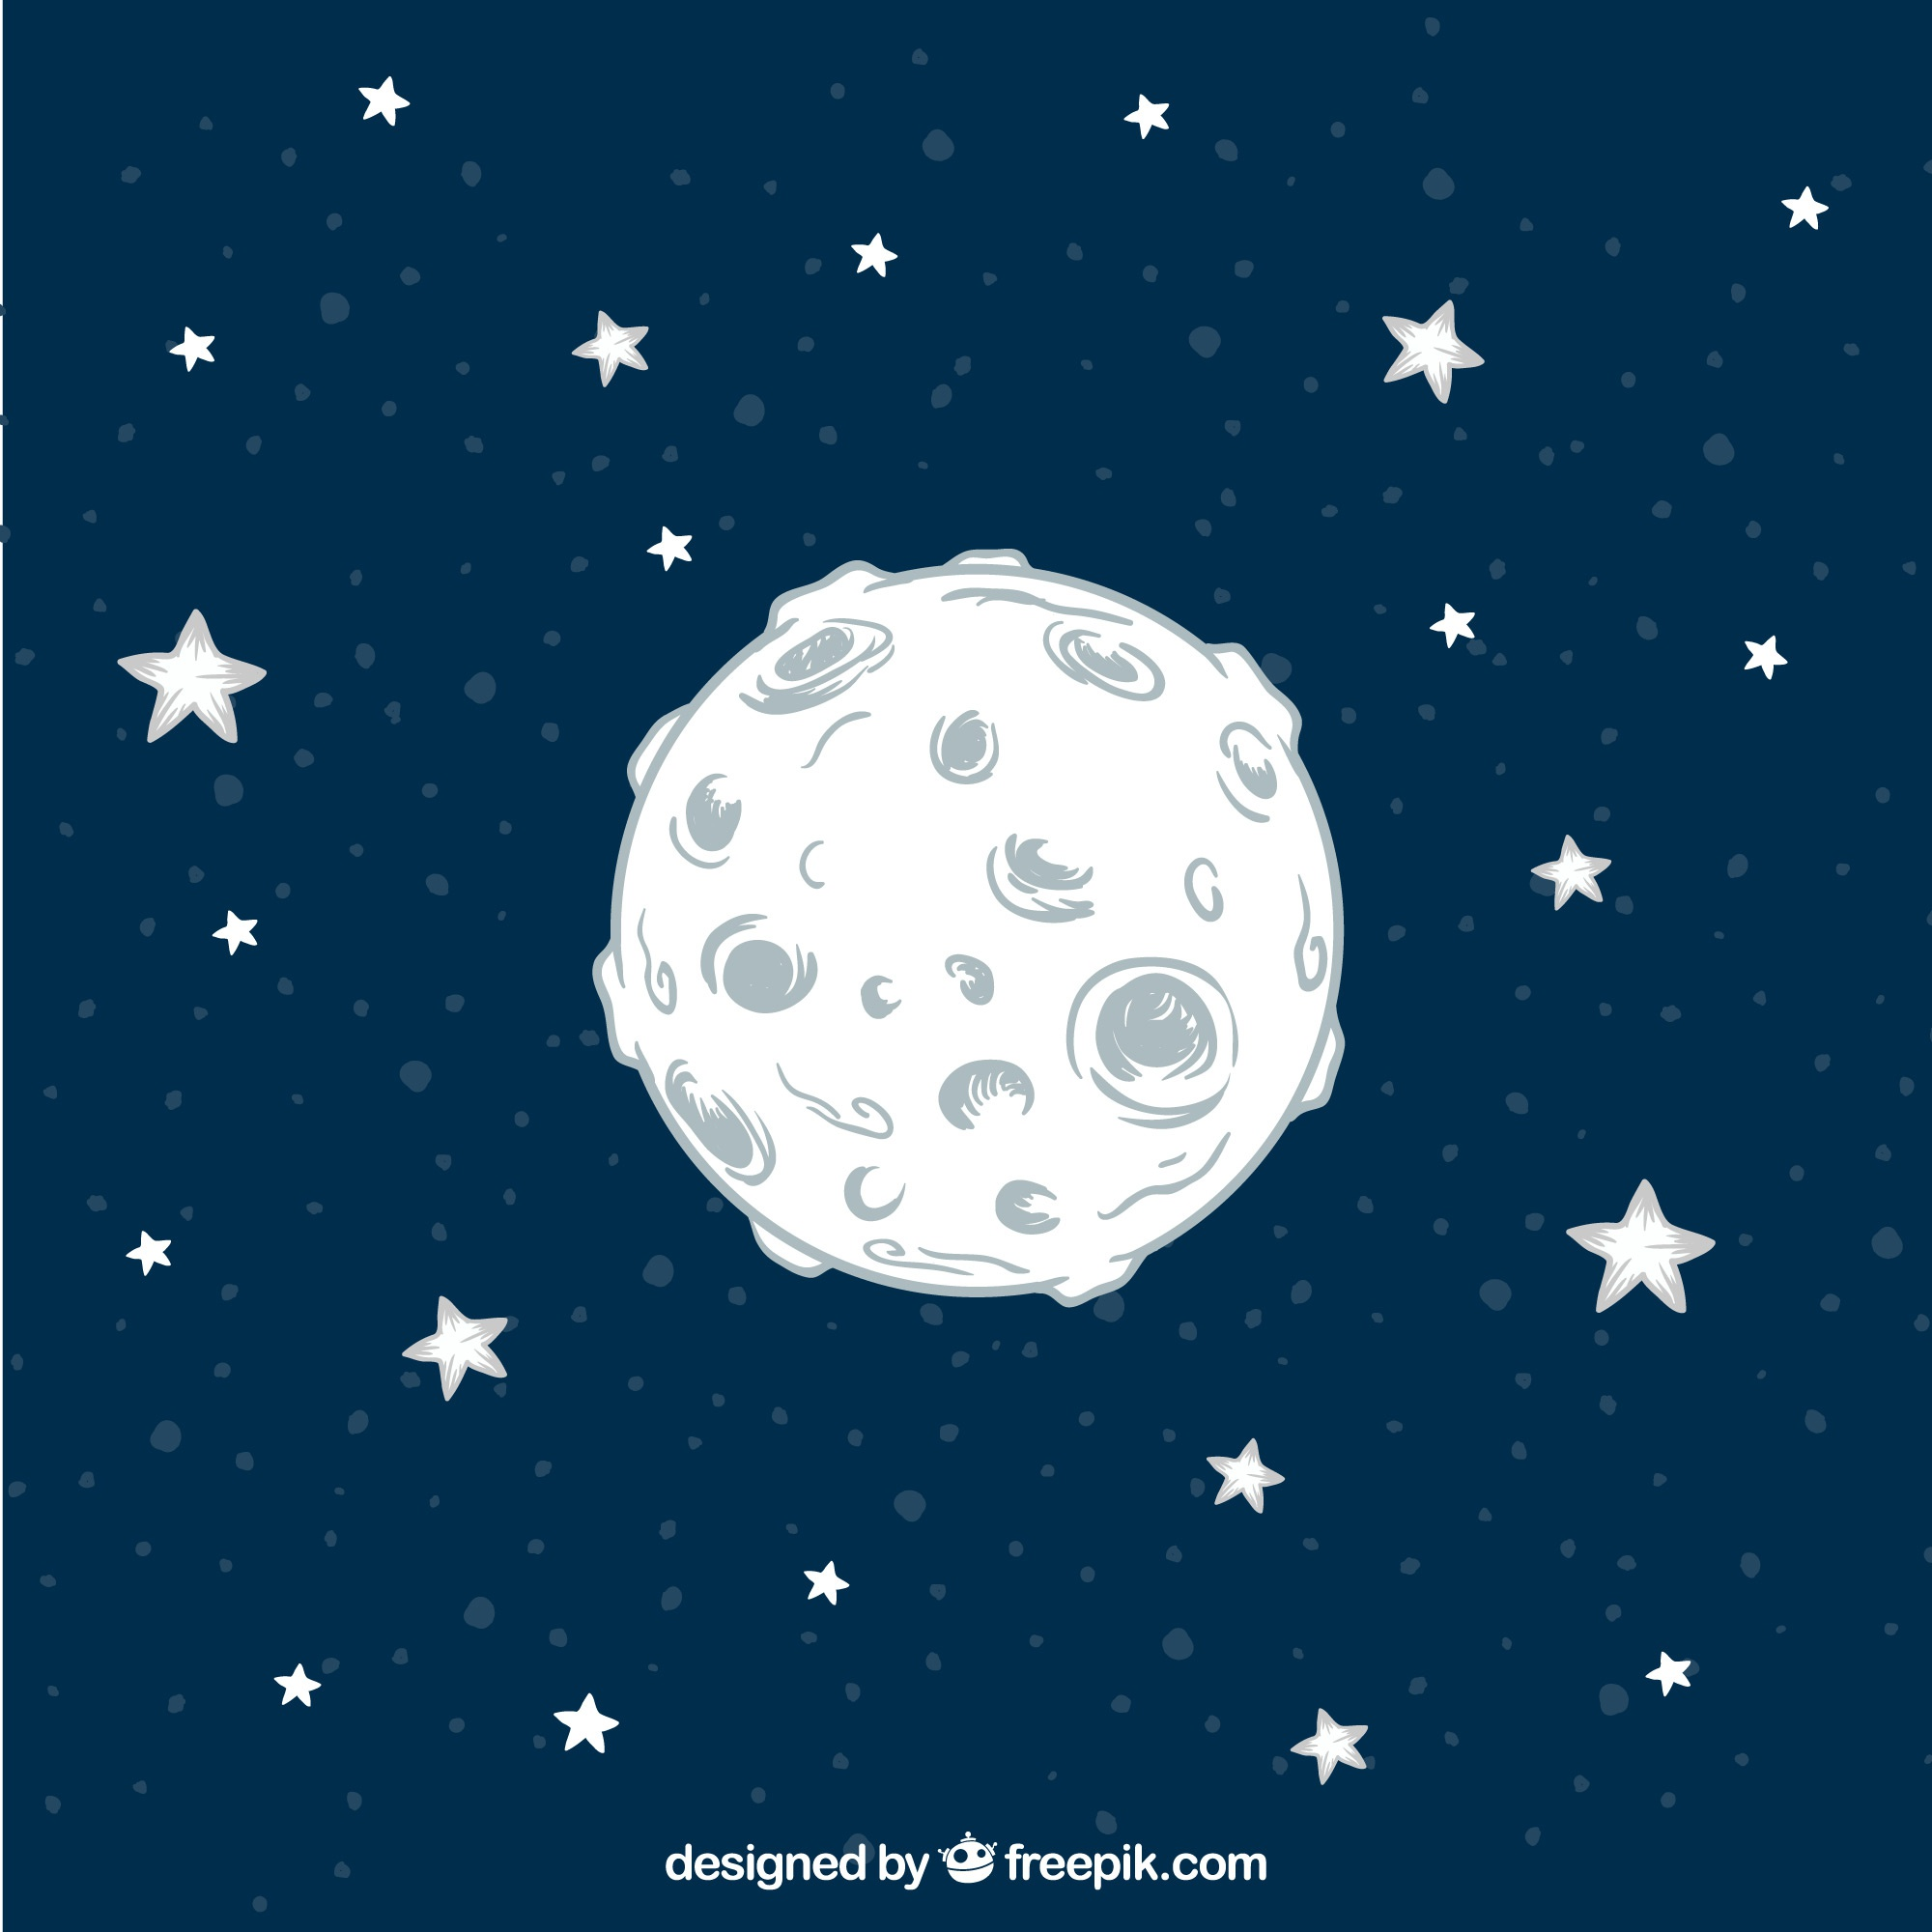 Hand drawn moon background with stars